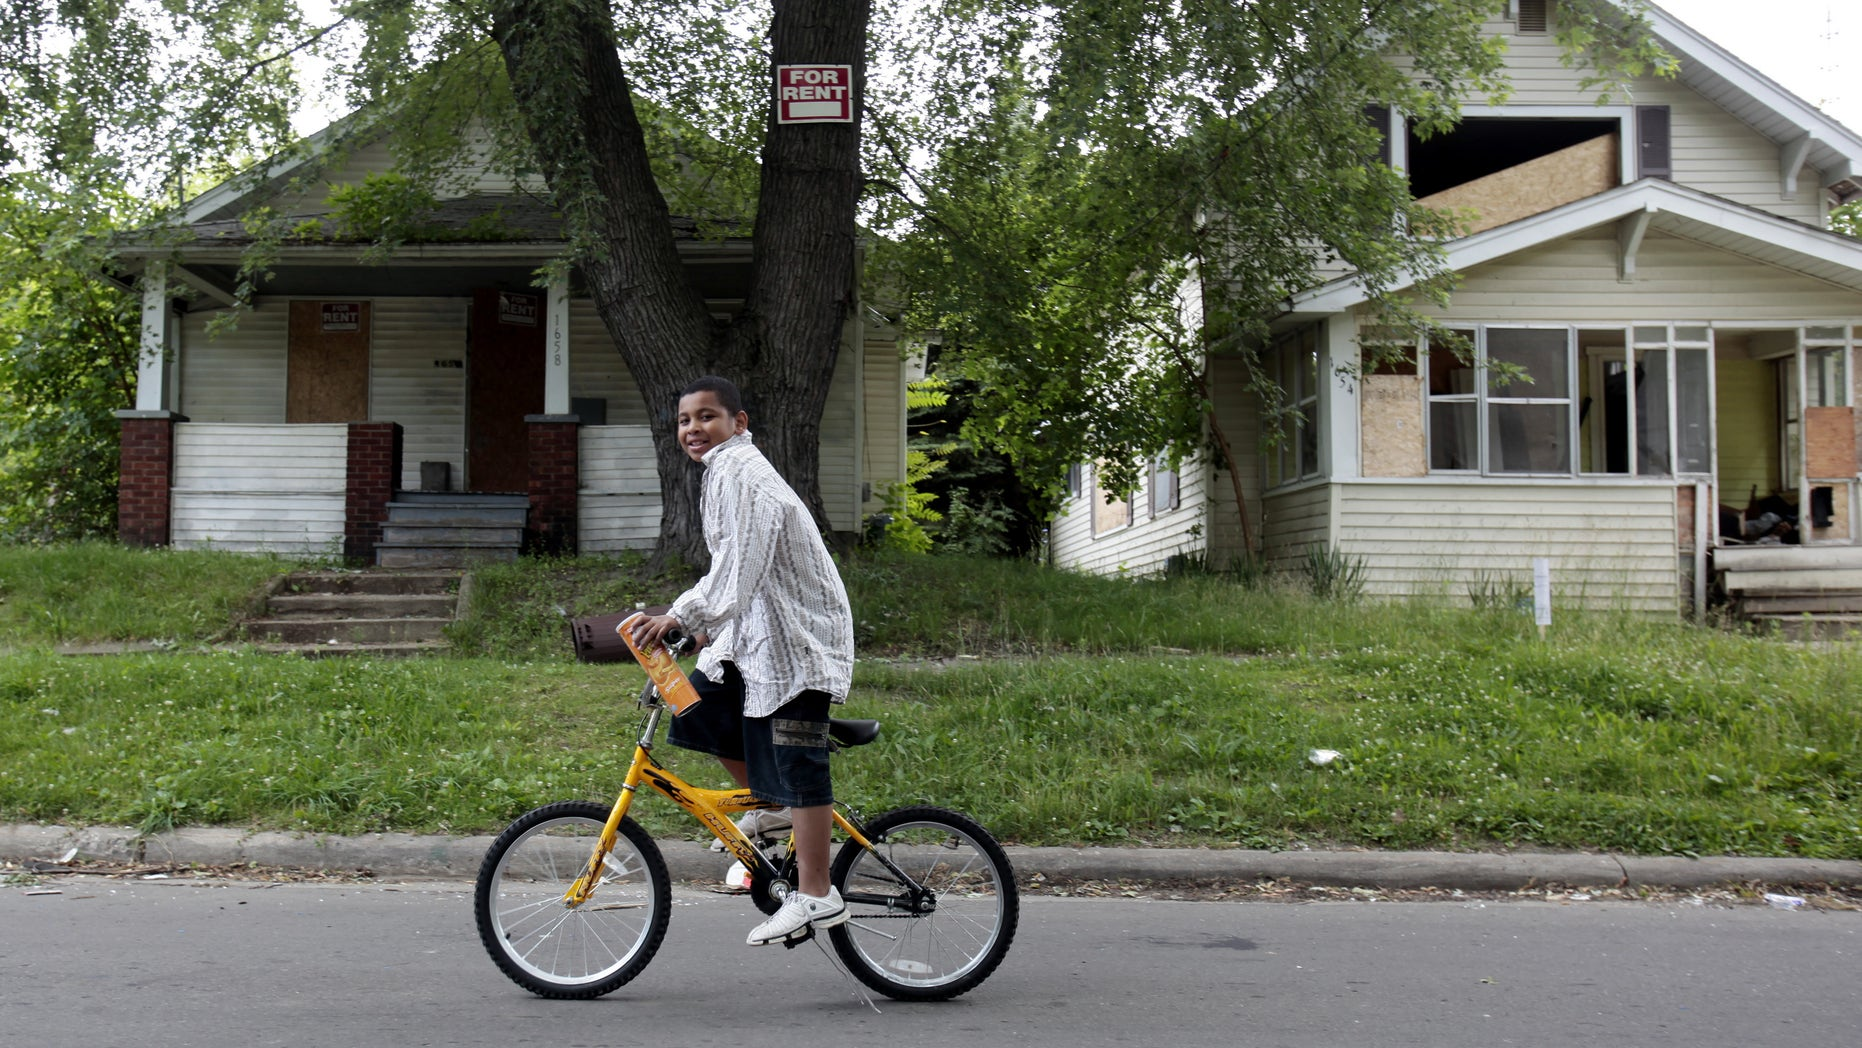 July 8, 2009 - FILE photo of a boy riding his bike past several abandoned houses in a former thriving working-class neighborhood that is now littered with blight in Flint, Michigan. A home in Flint recently went on the market for a mere $188.